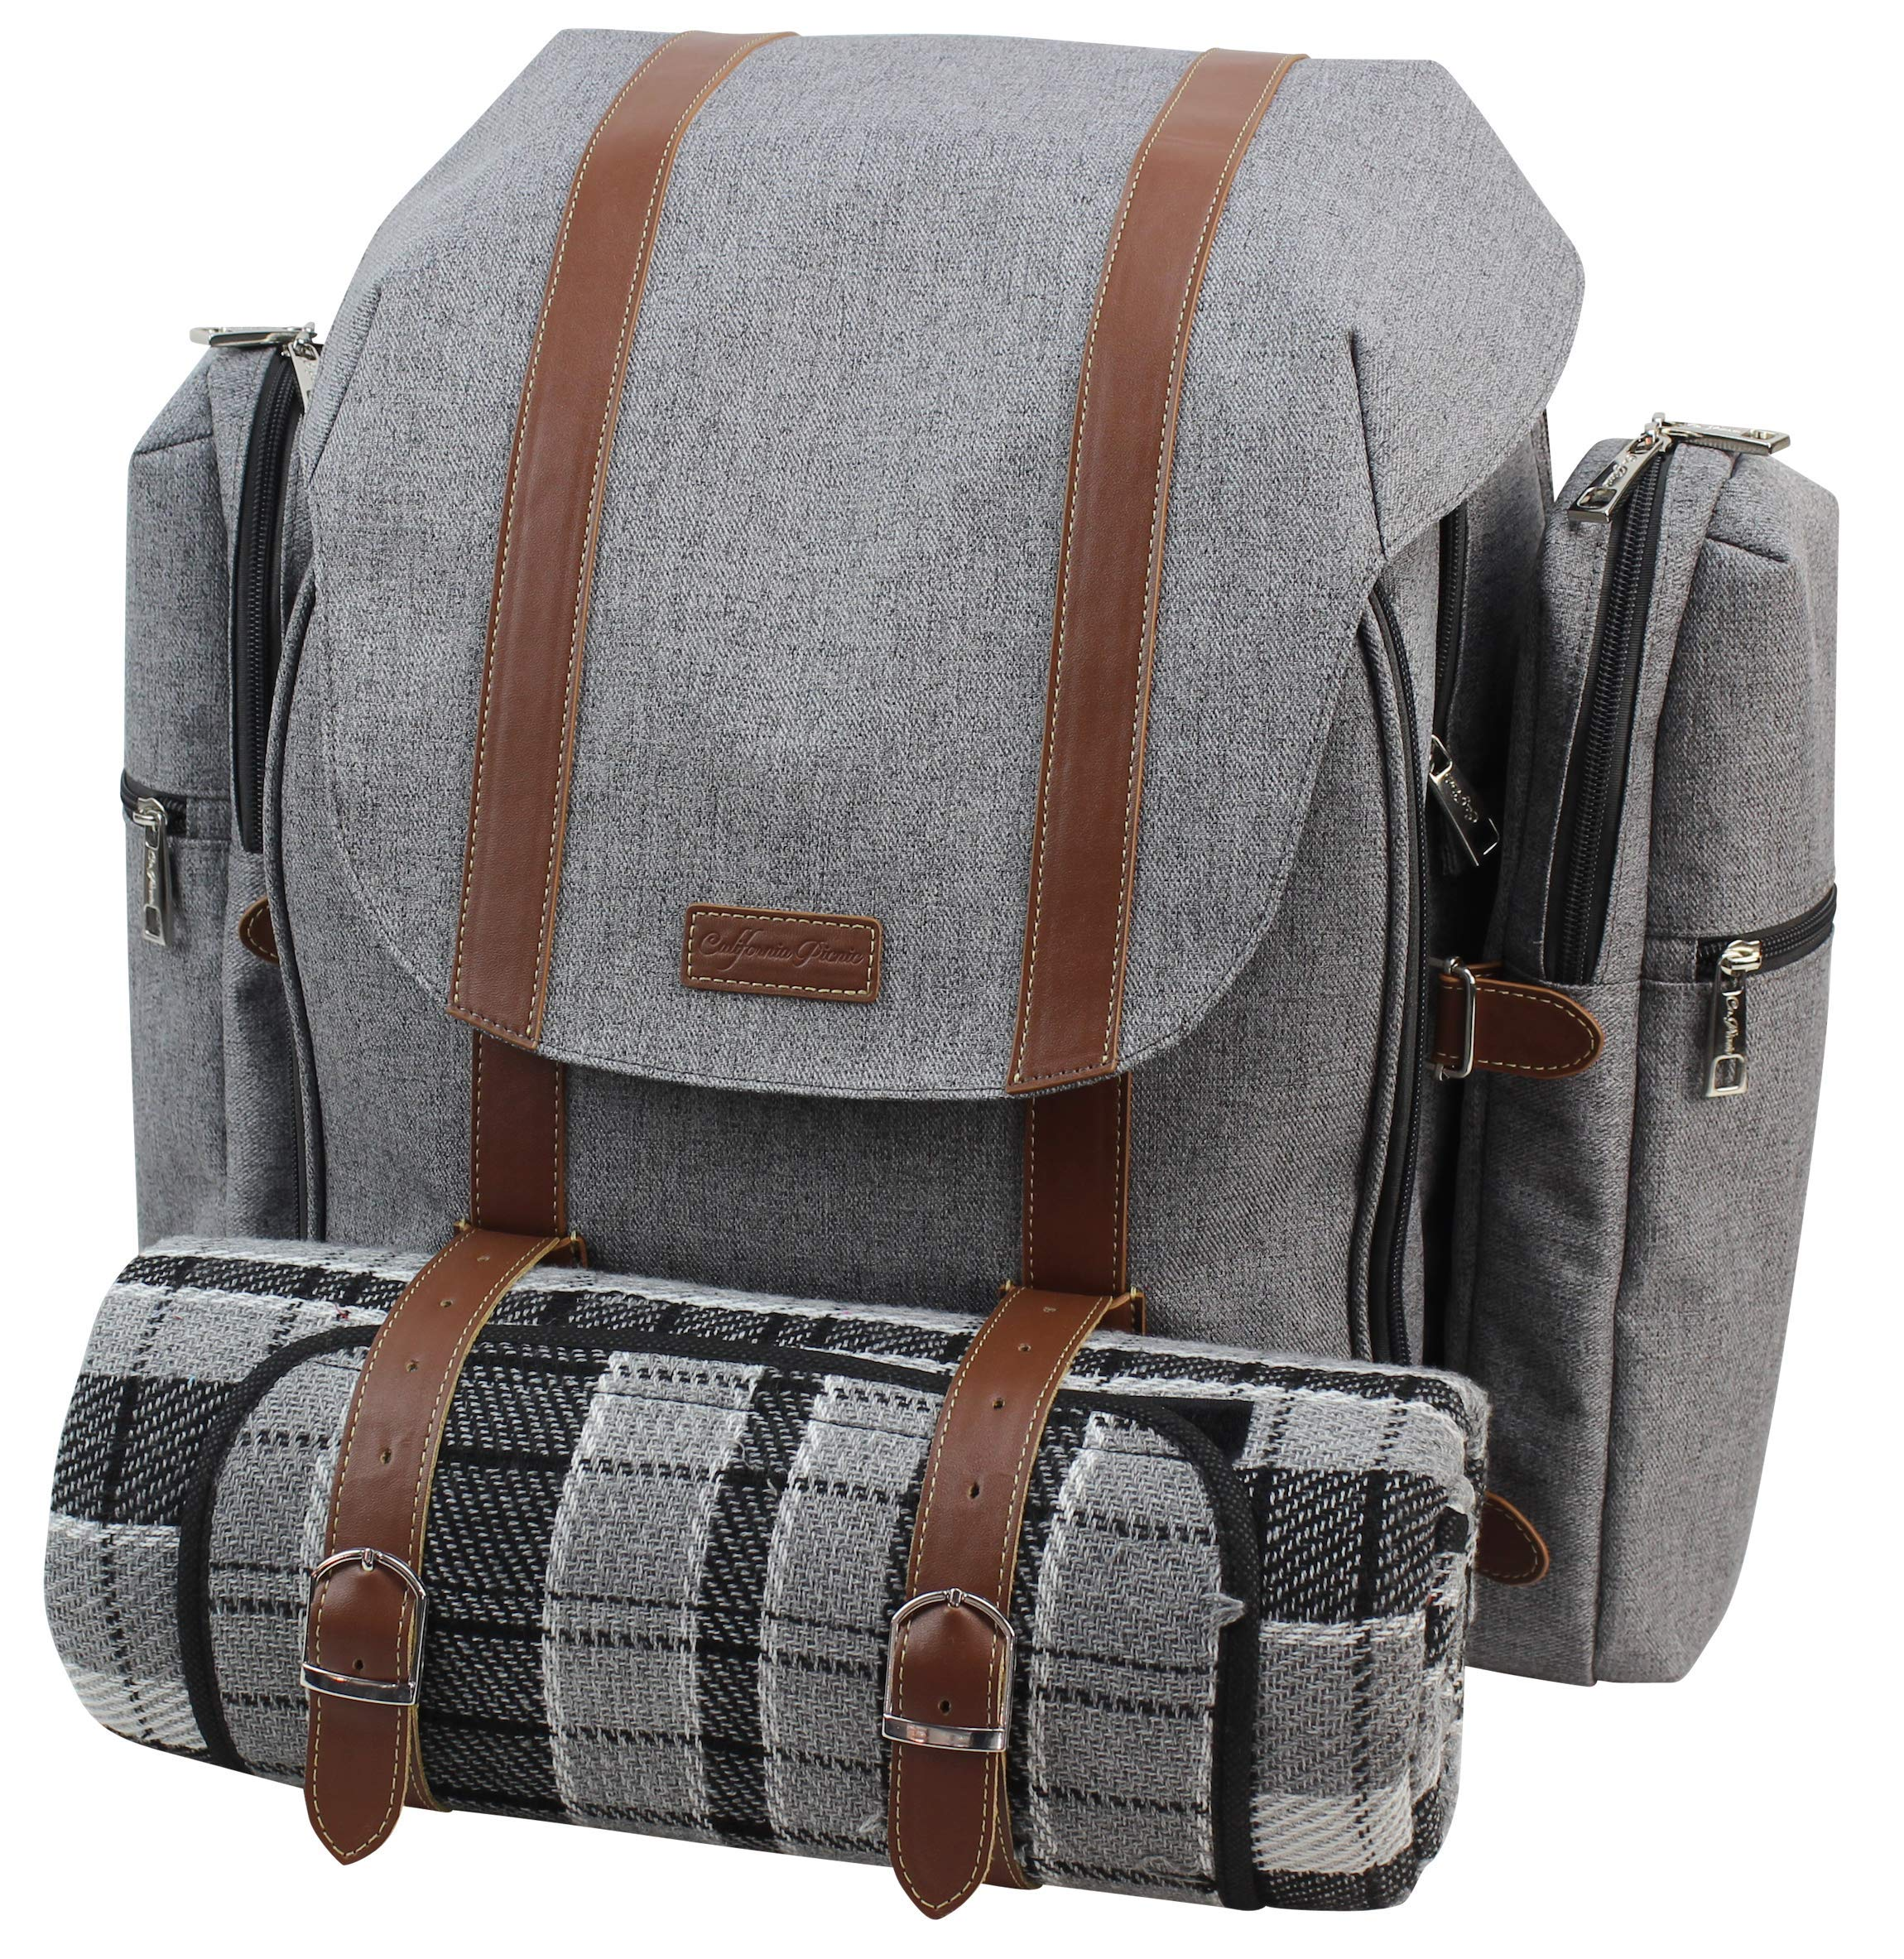 Picnic Backpack for 4 | Picnic Basket | Stylish All-in-One Portable Picnic Bag with Complete Cutlery Set, Stainless Steel S/P Shakers | Waterproof Knitted Picnic Blanket | Cooler Bag for Camping